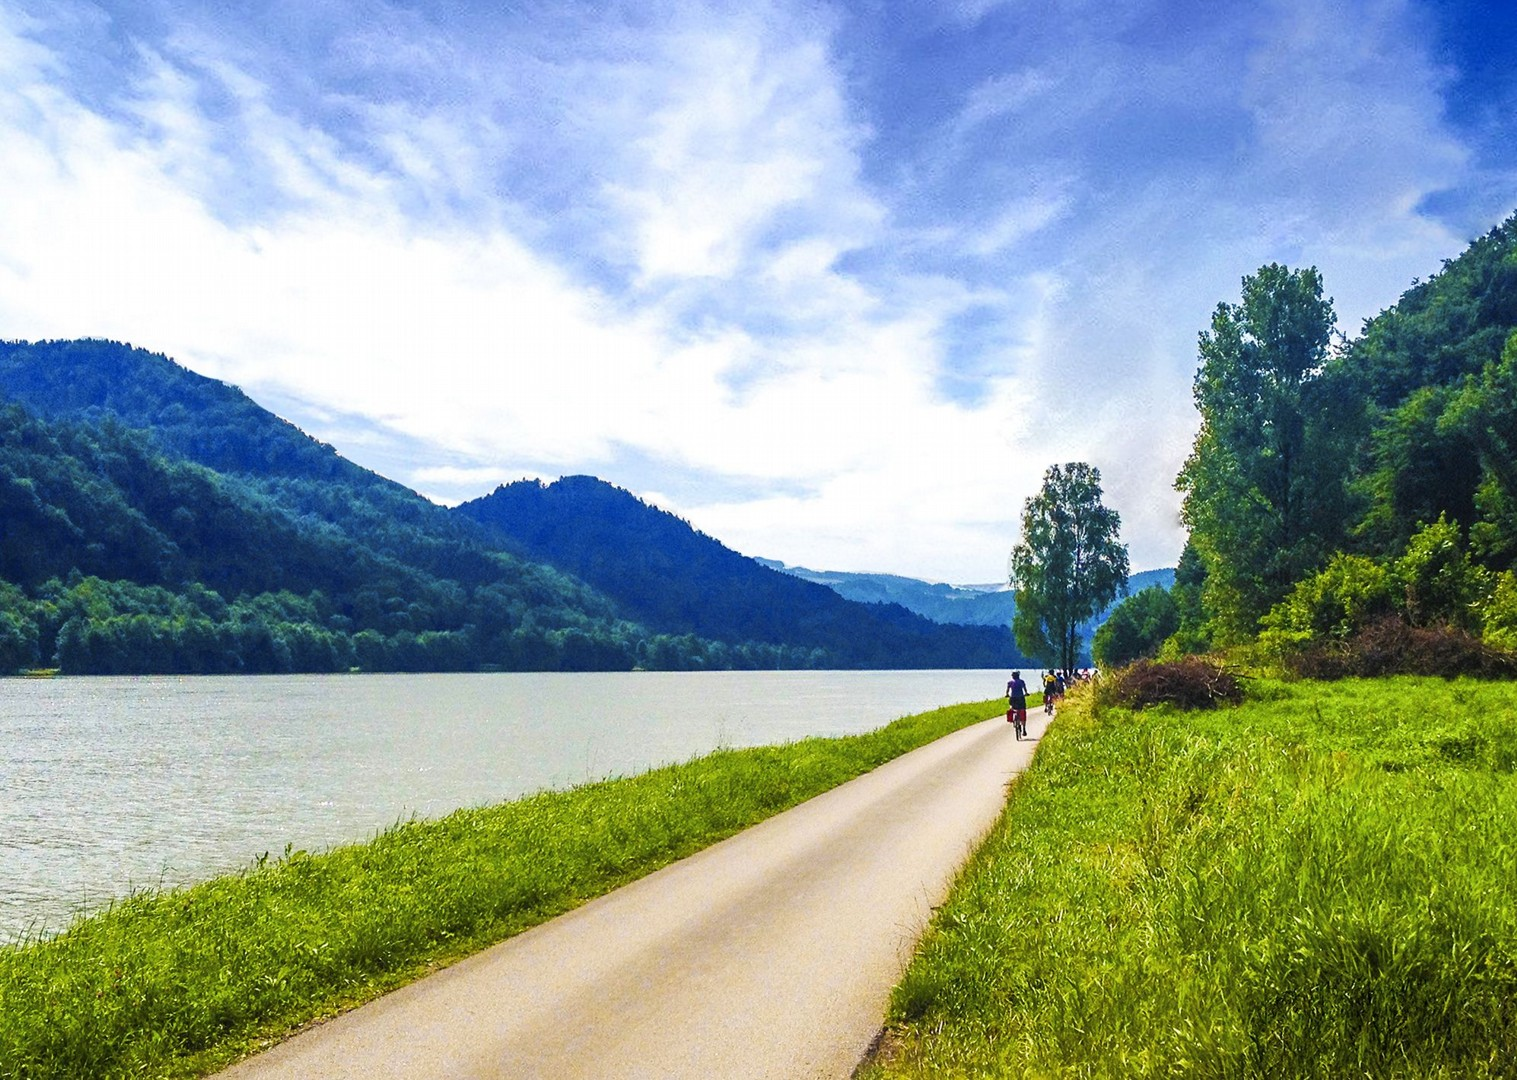 danube-river-cycling-holiday-leisure-fun-easy.jpg - Germany and Austria - The Danube Cycle Path - Supported Leisure Cycling Holiday - Leisure Cycling